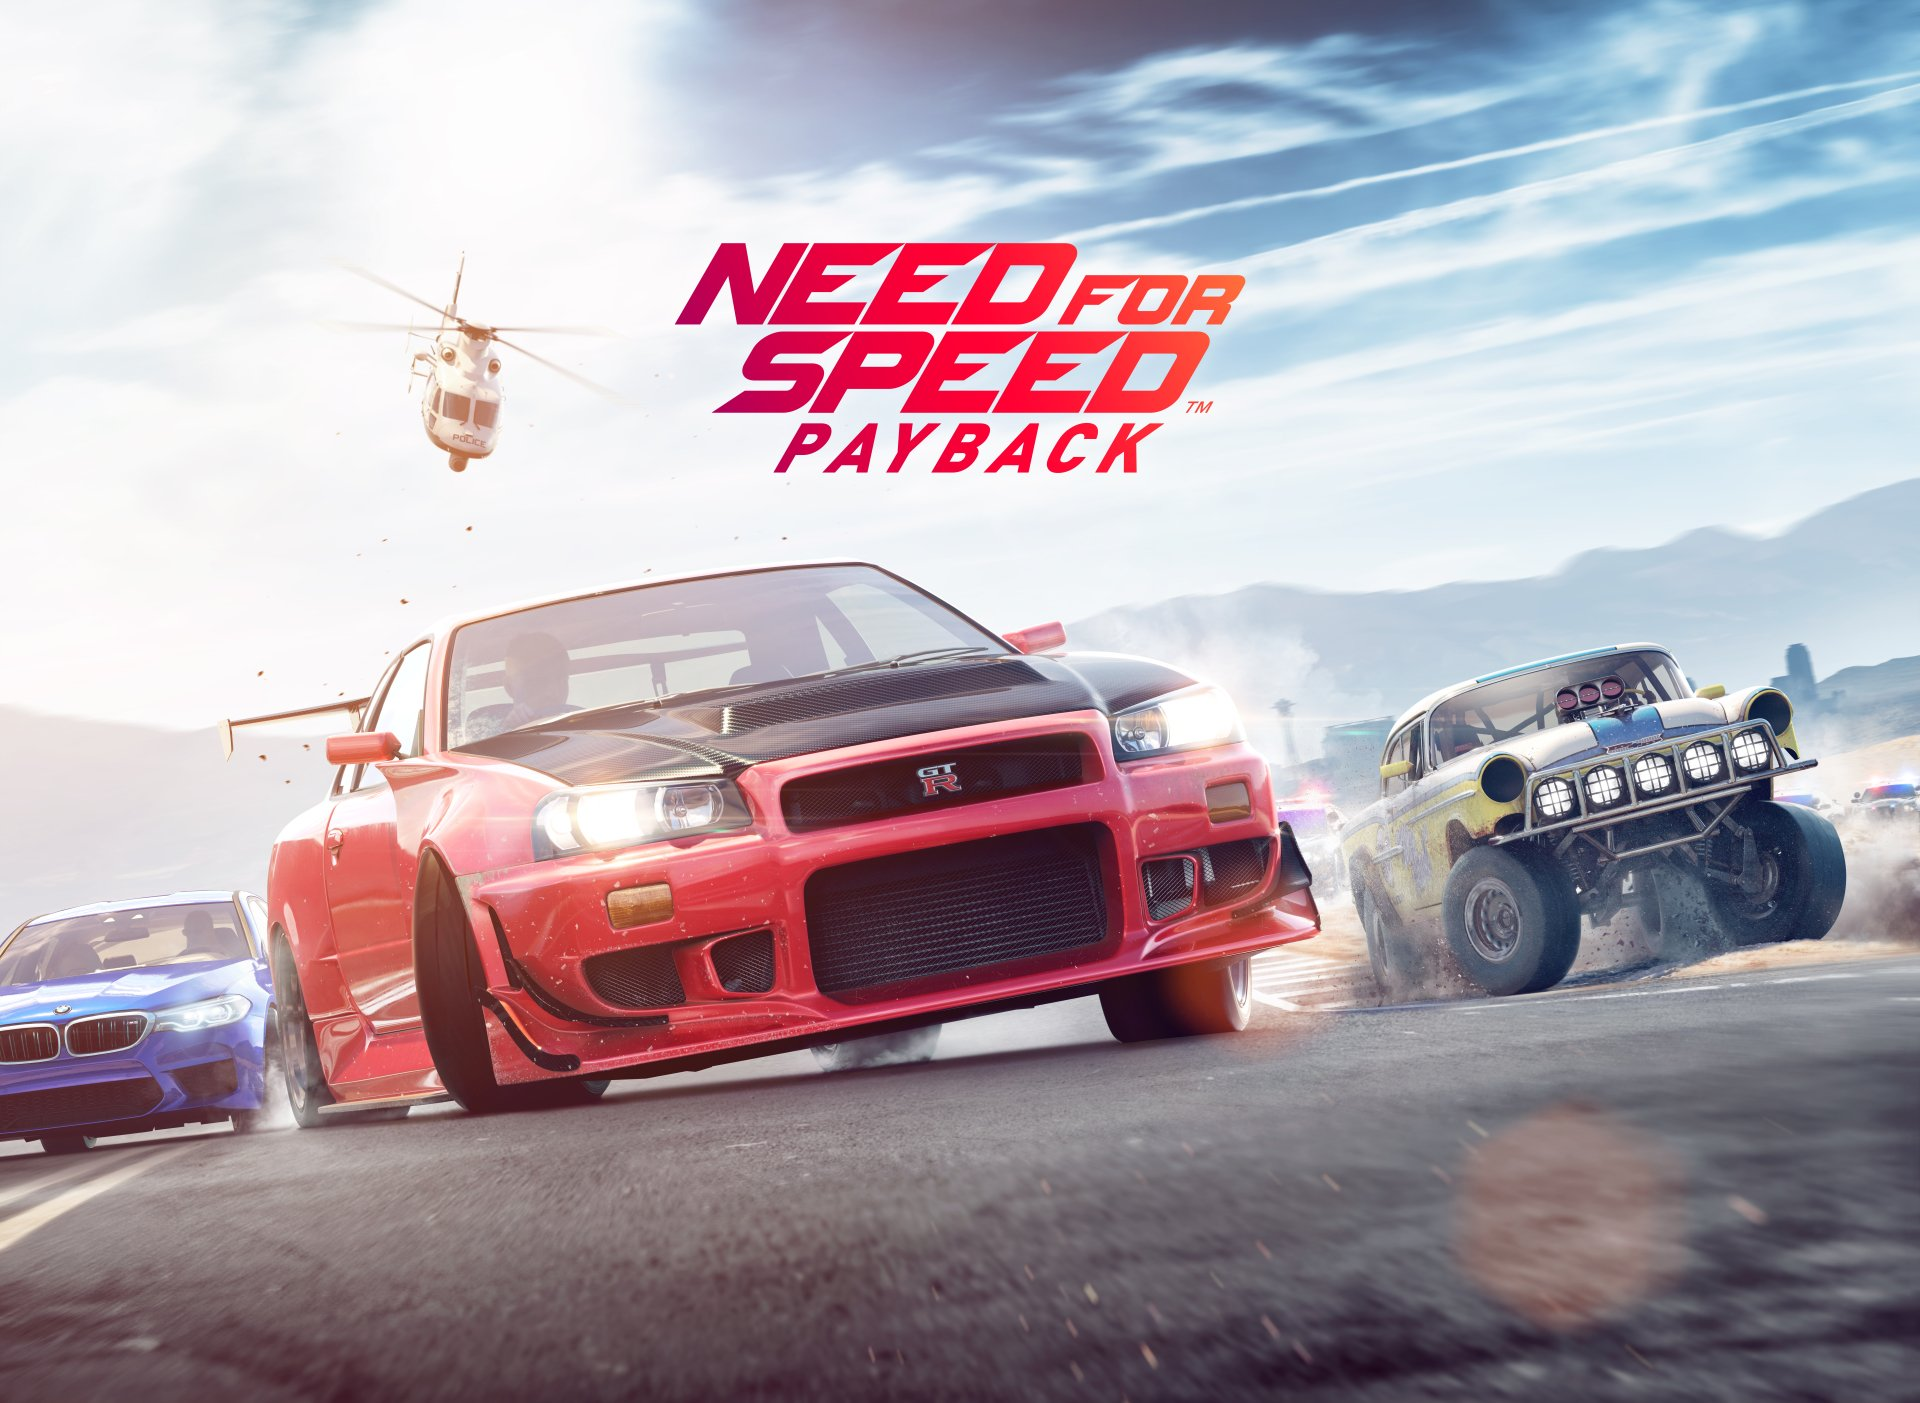 69 Need For Speed Payback Hd Wallpapers Background Images Wallpaper Abyss